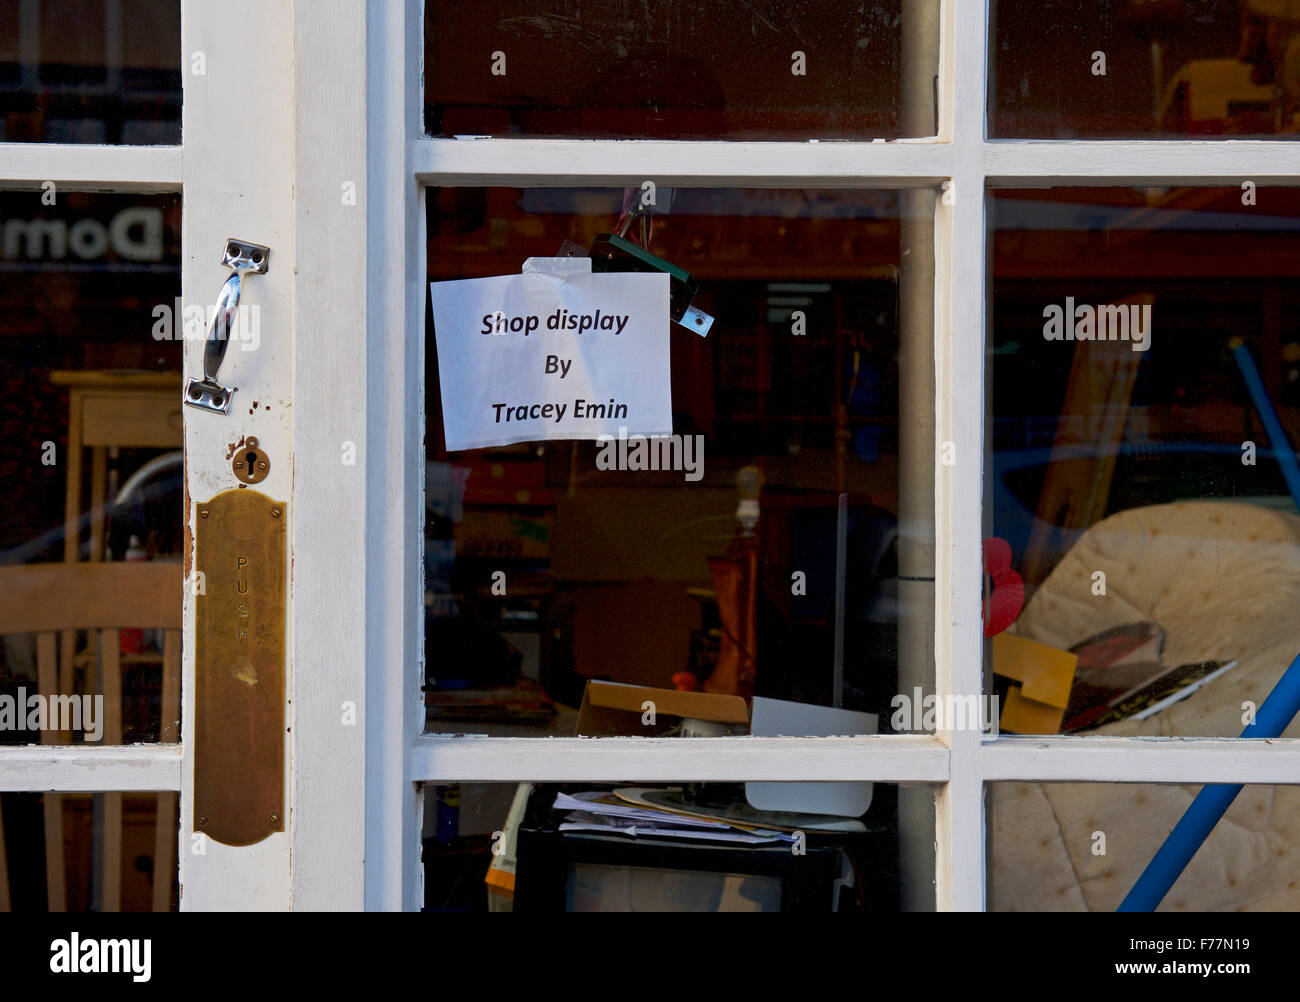 sign: shop window by Tracey Emin, England UK - Stock Image